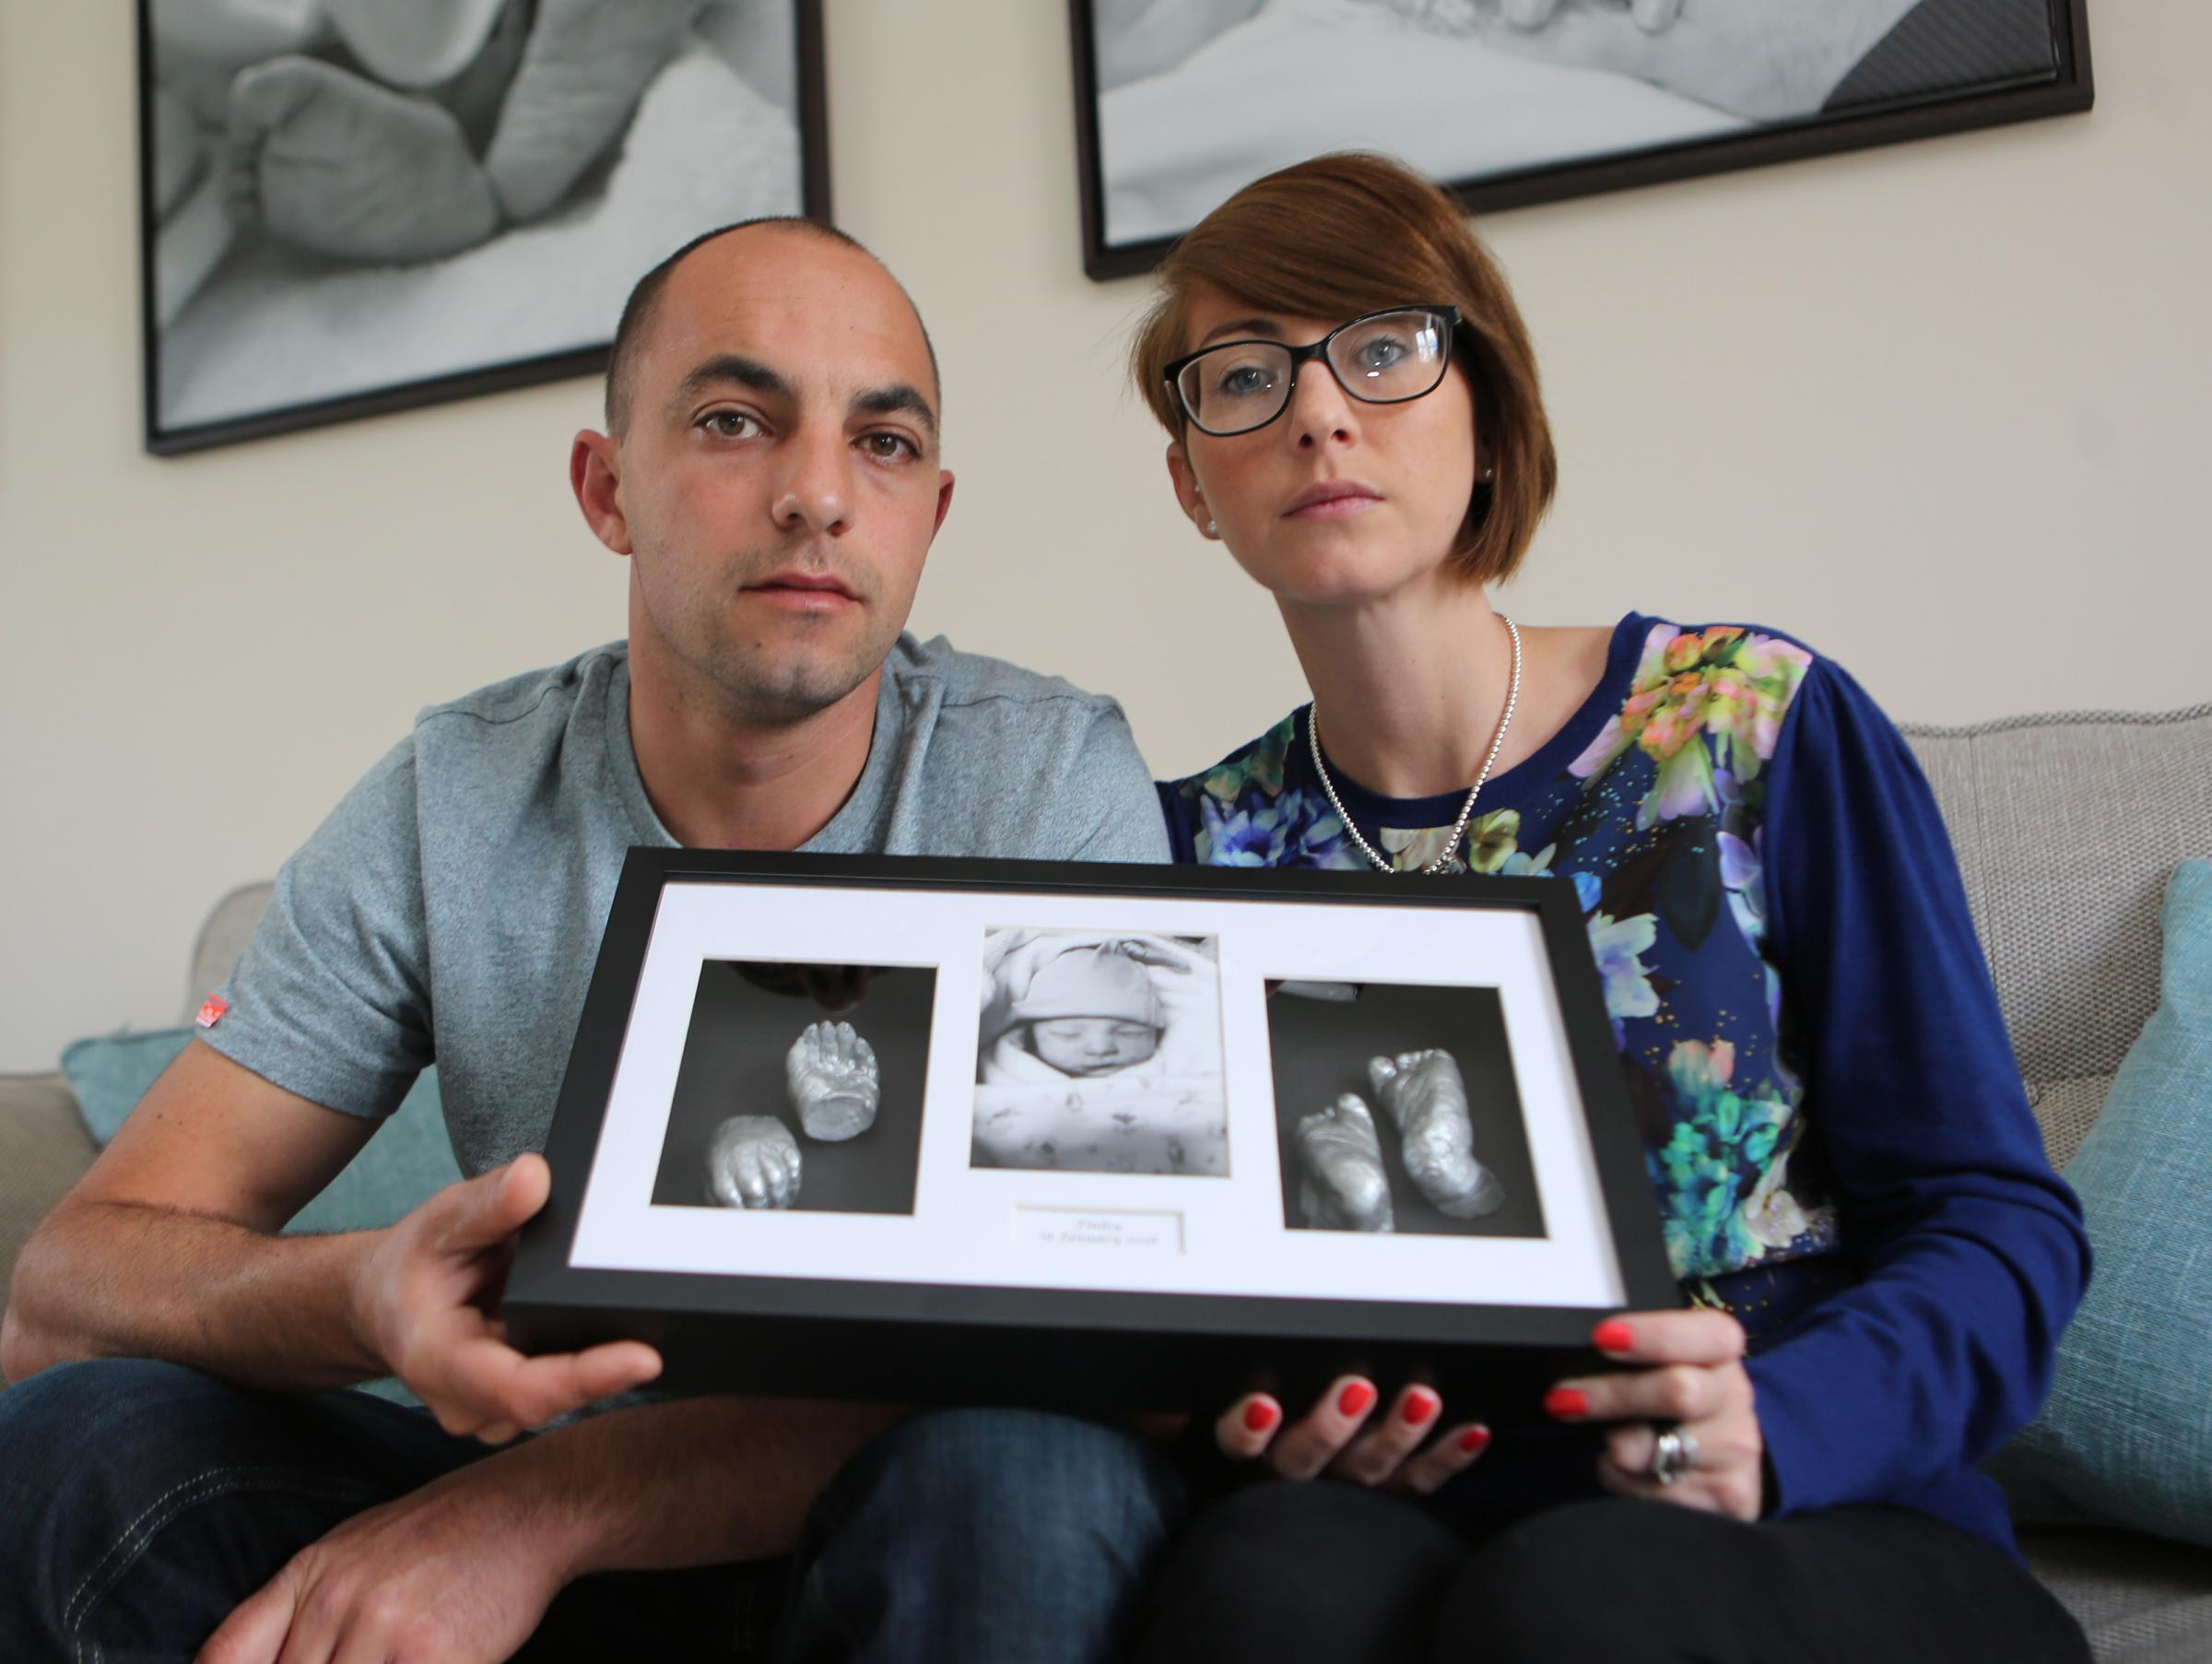 Robert and Charlotte Smith with framed castings of their son Finley's hands and feet.